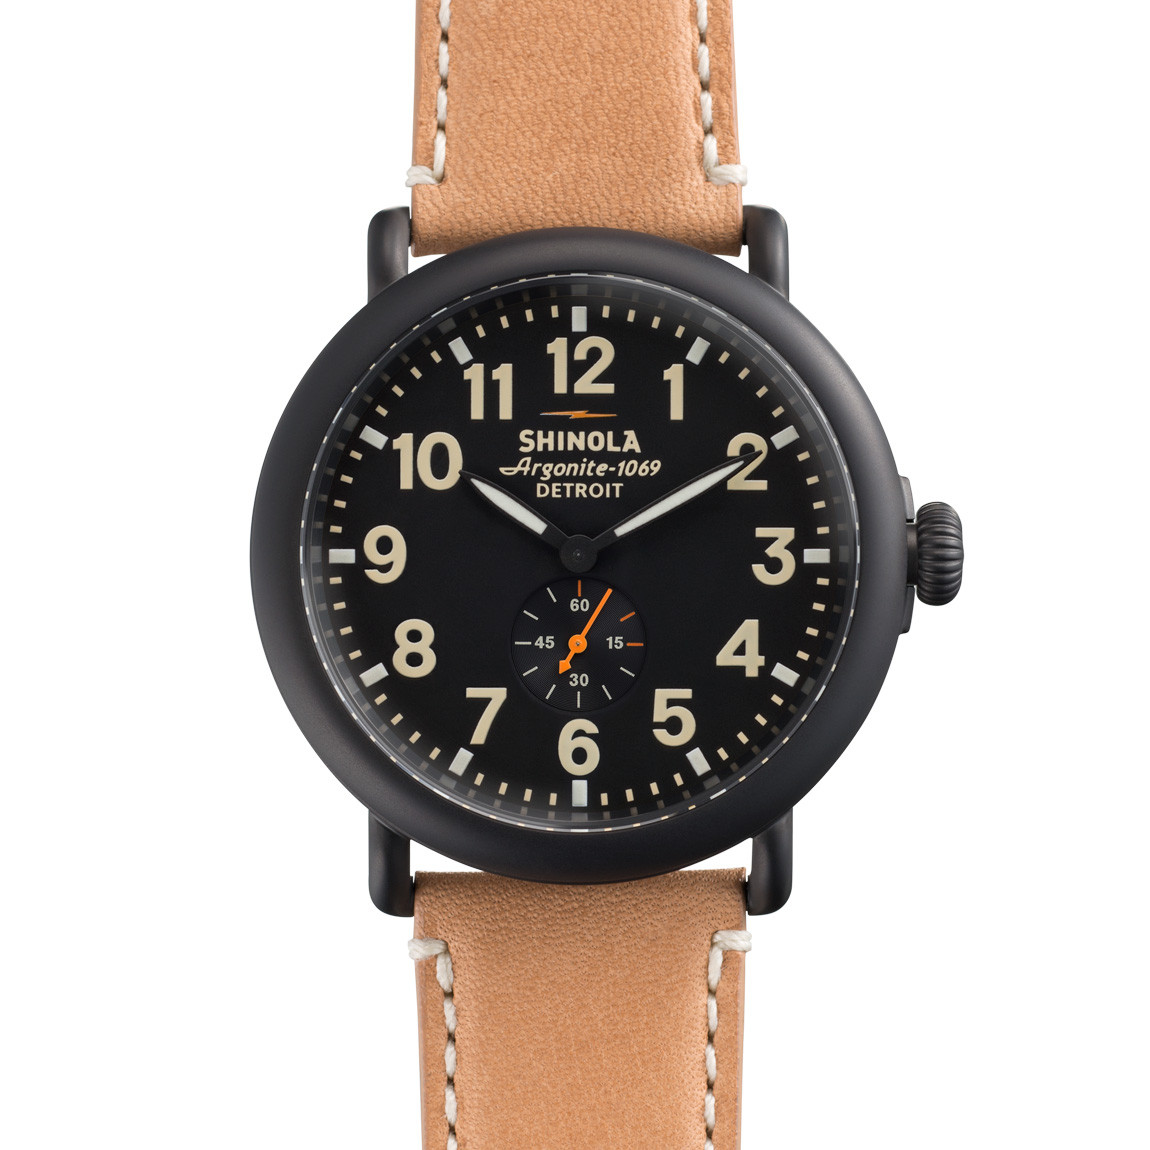 Big Face Watches For Men Shinola Runwell